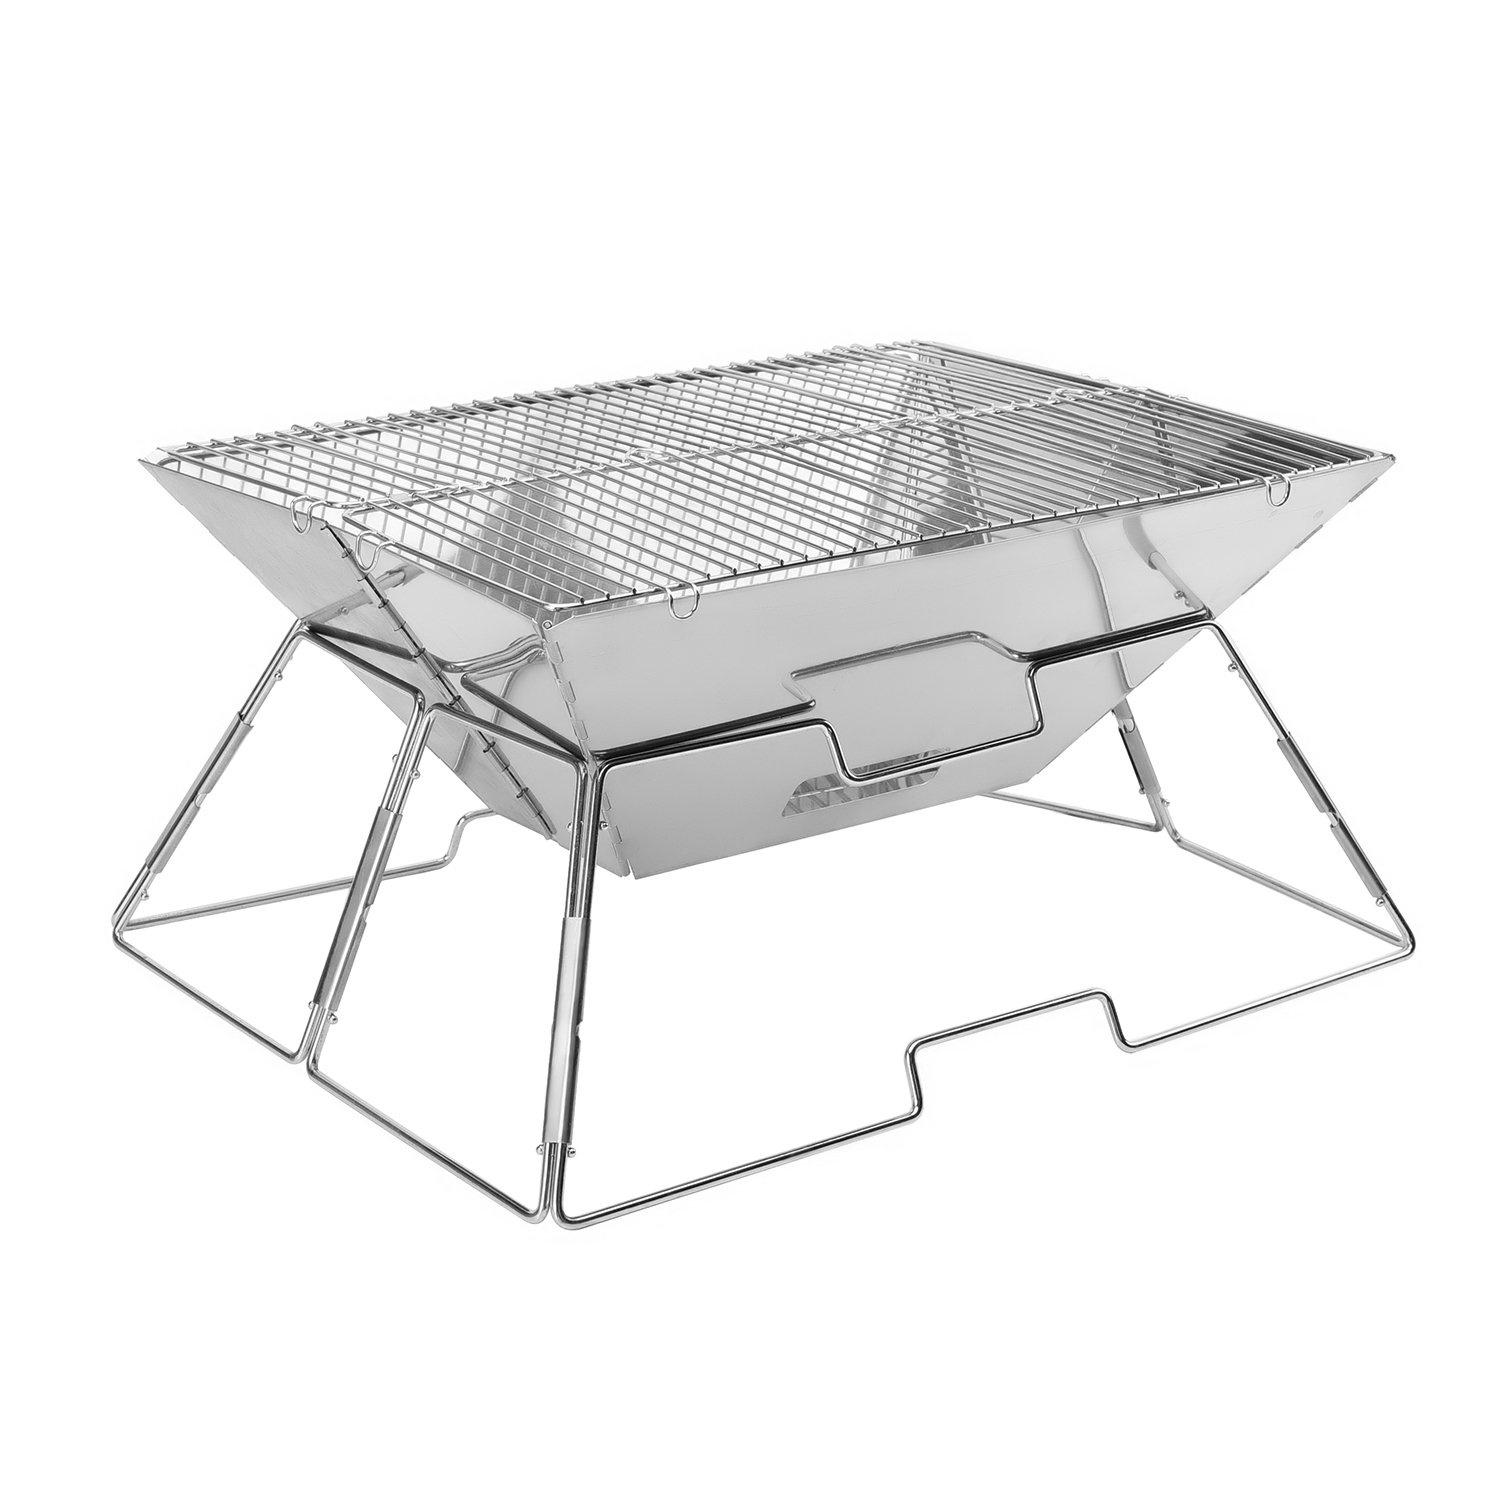 VANDER Life Foldable Folding BBQ Barbecue Flat Pack Portable Camping Outdoor Garden Grill/Quick Grill Medium: Original Folding Charcoal BBQ Grill Made from Stainless Steel